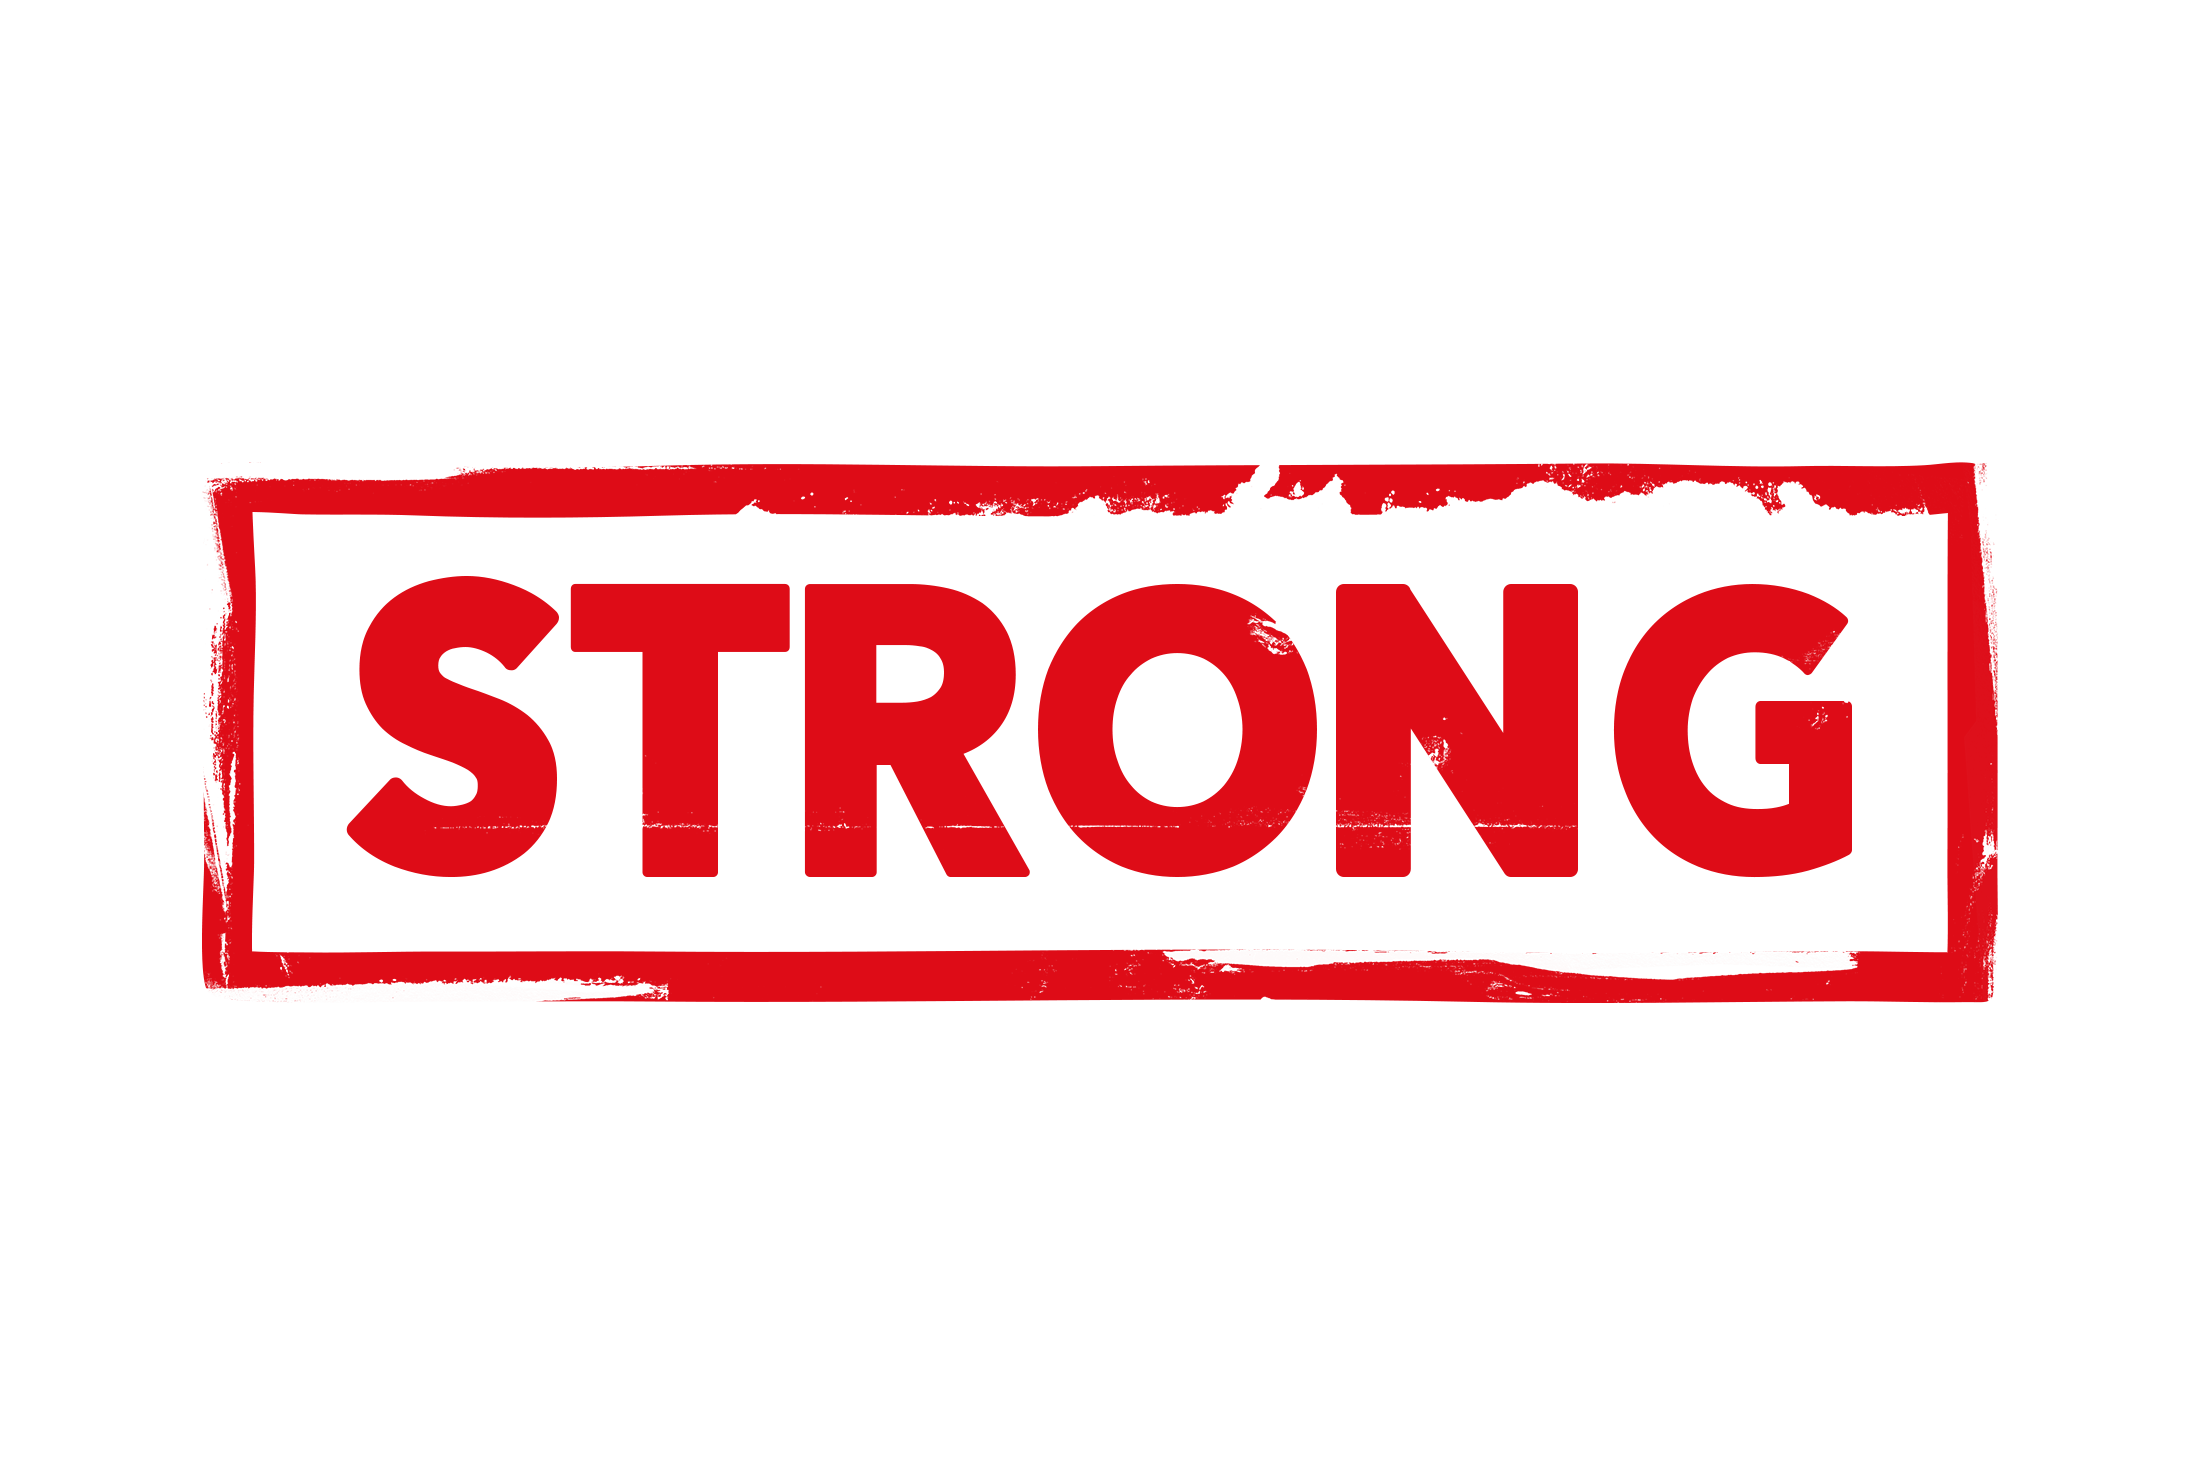 Strong stamp PSD